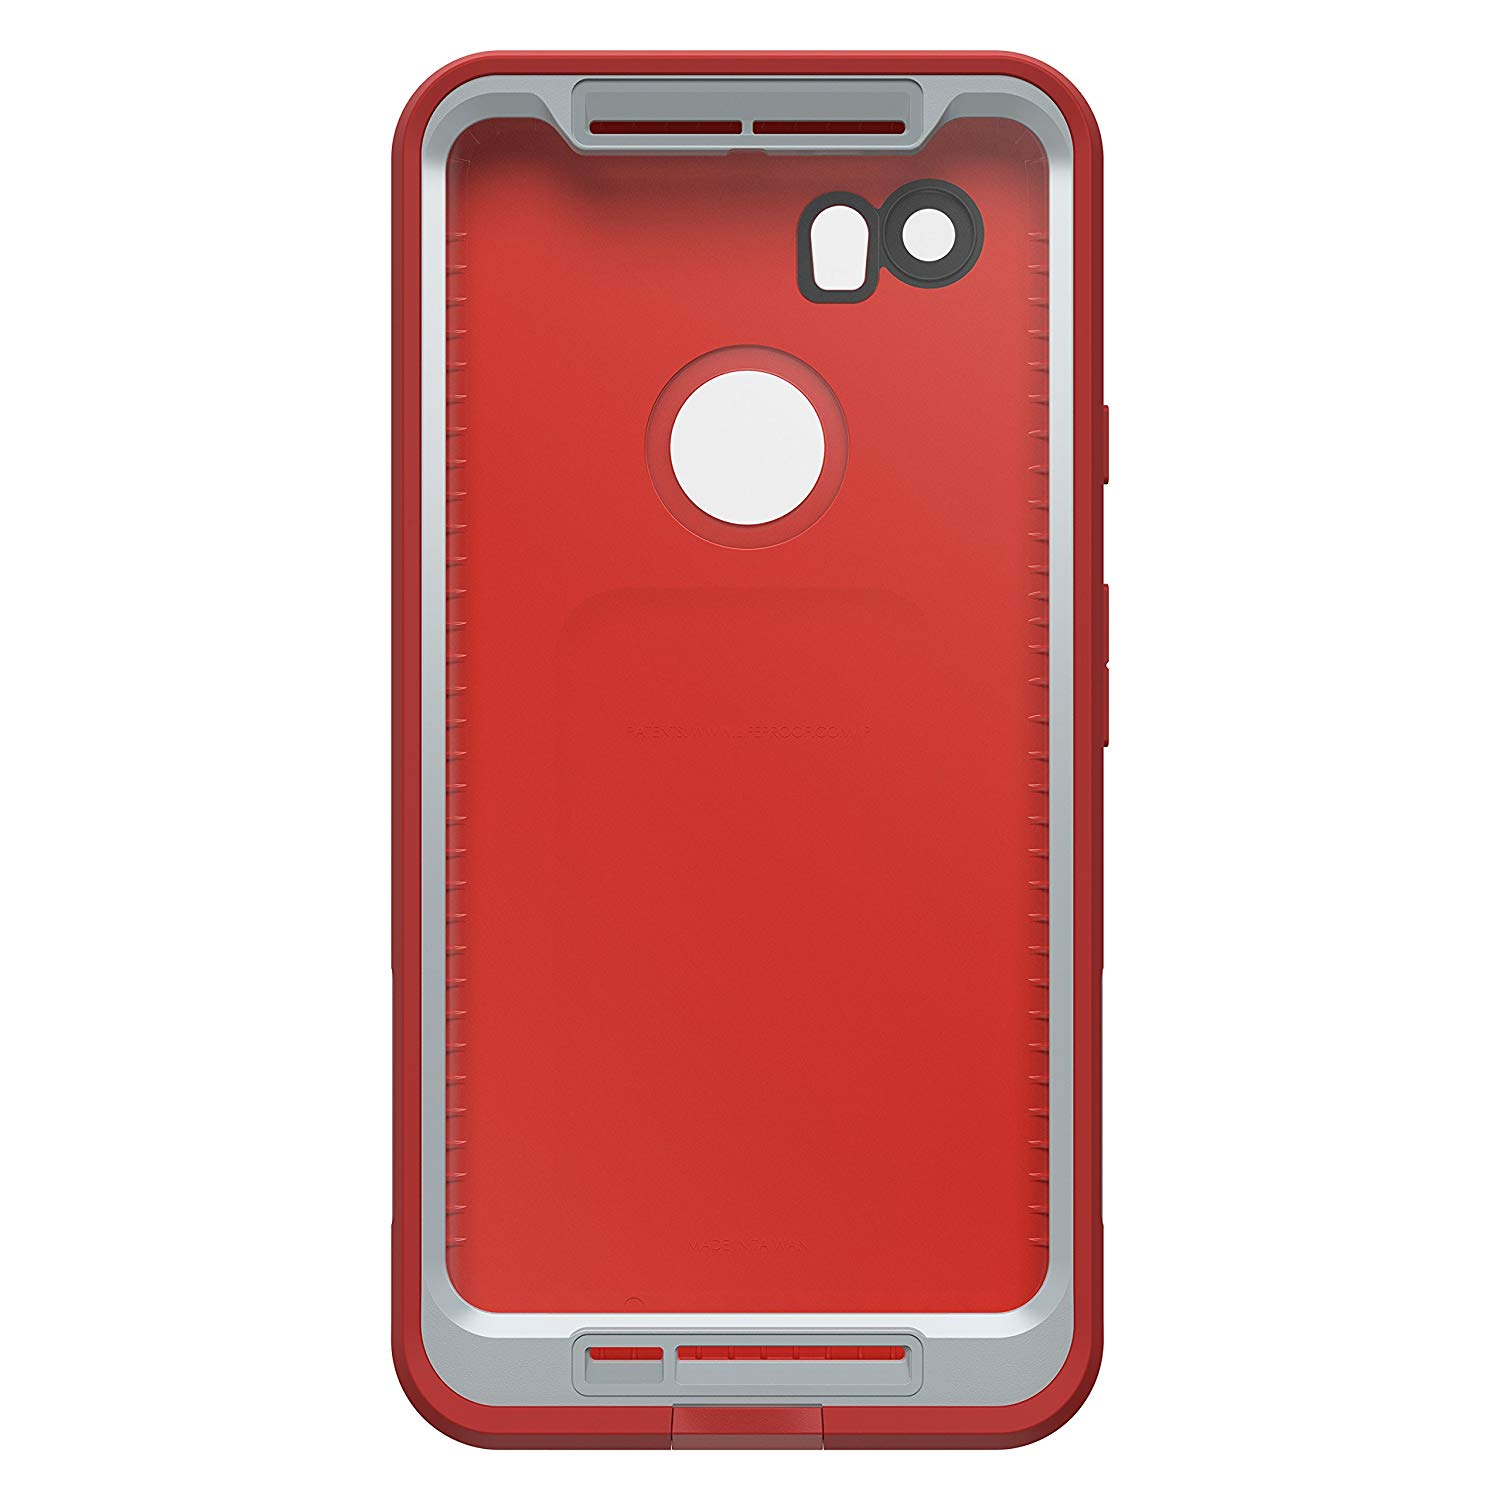 info for bf262 56f32 LifeProof fre Waterproof Case for Google Pixel 2 XL - Fire Run (Cherry  Tomato/Sleet/Molten Lava)